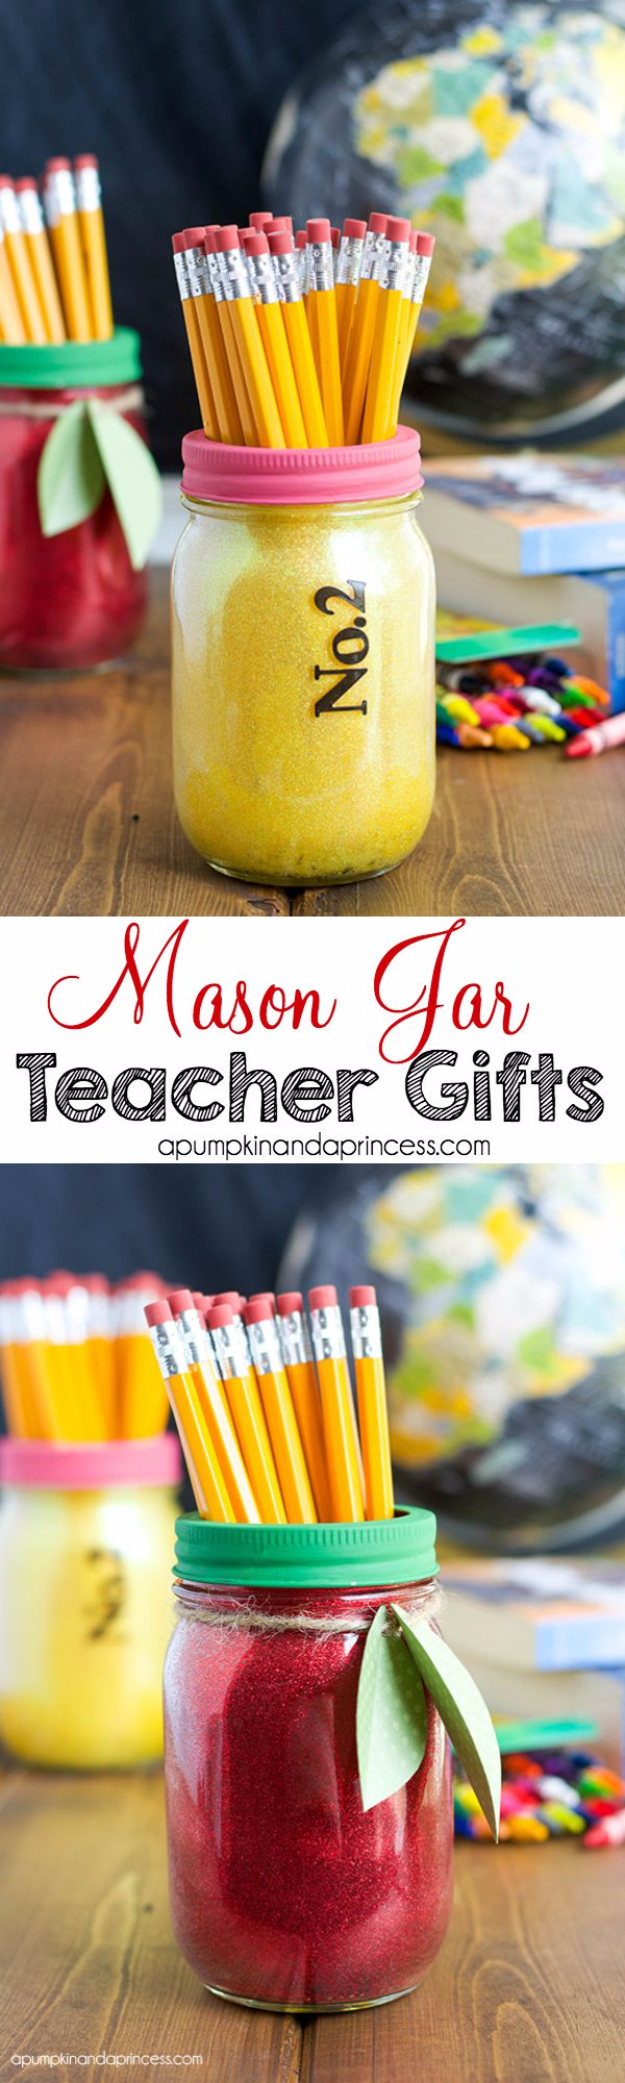 DIY Teacher Gifts - Glitter Mason Jar Teacher Gifts - Cheap and Easy Presents and DIY & 33 Best DIY Teacher Gifts